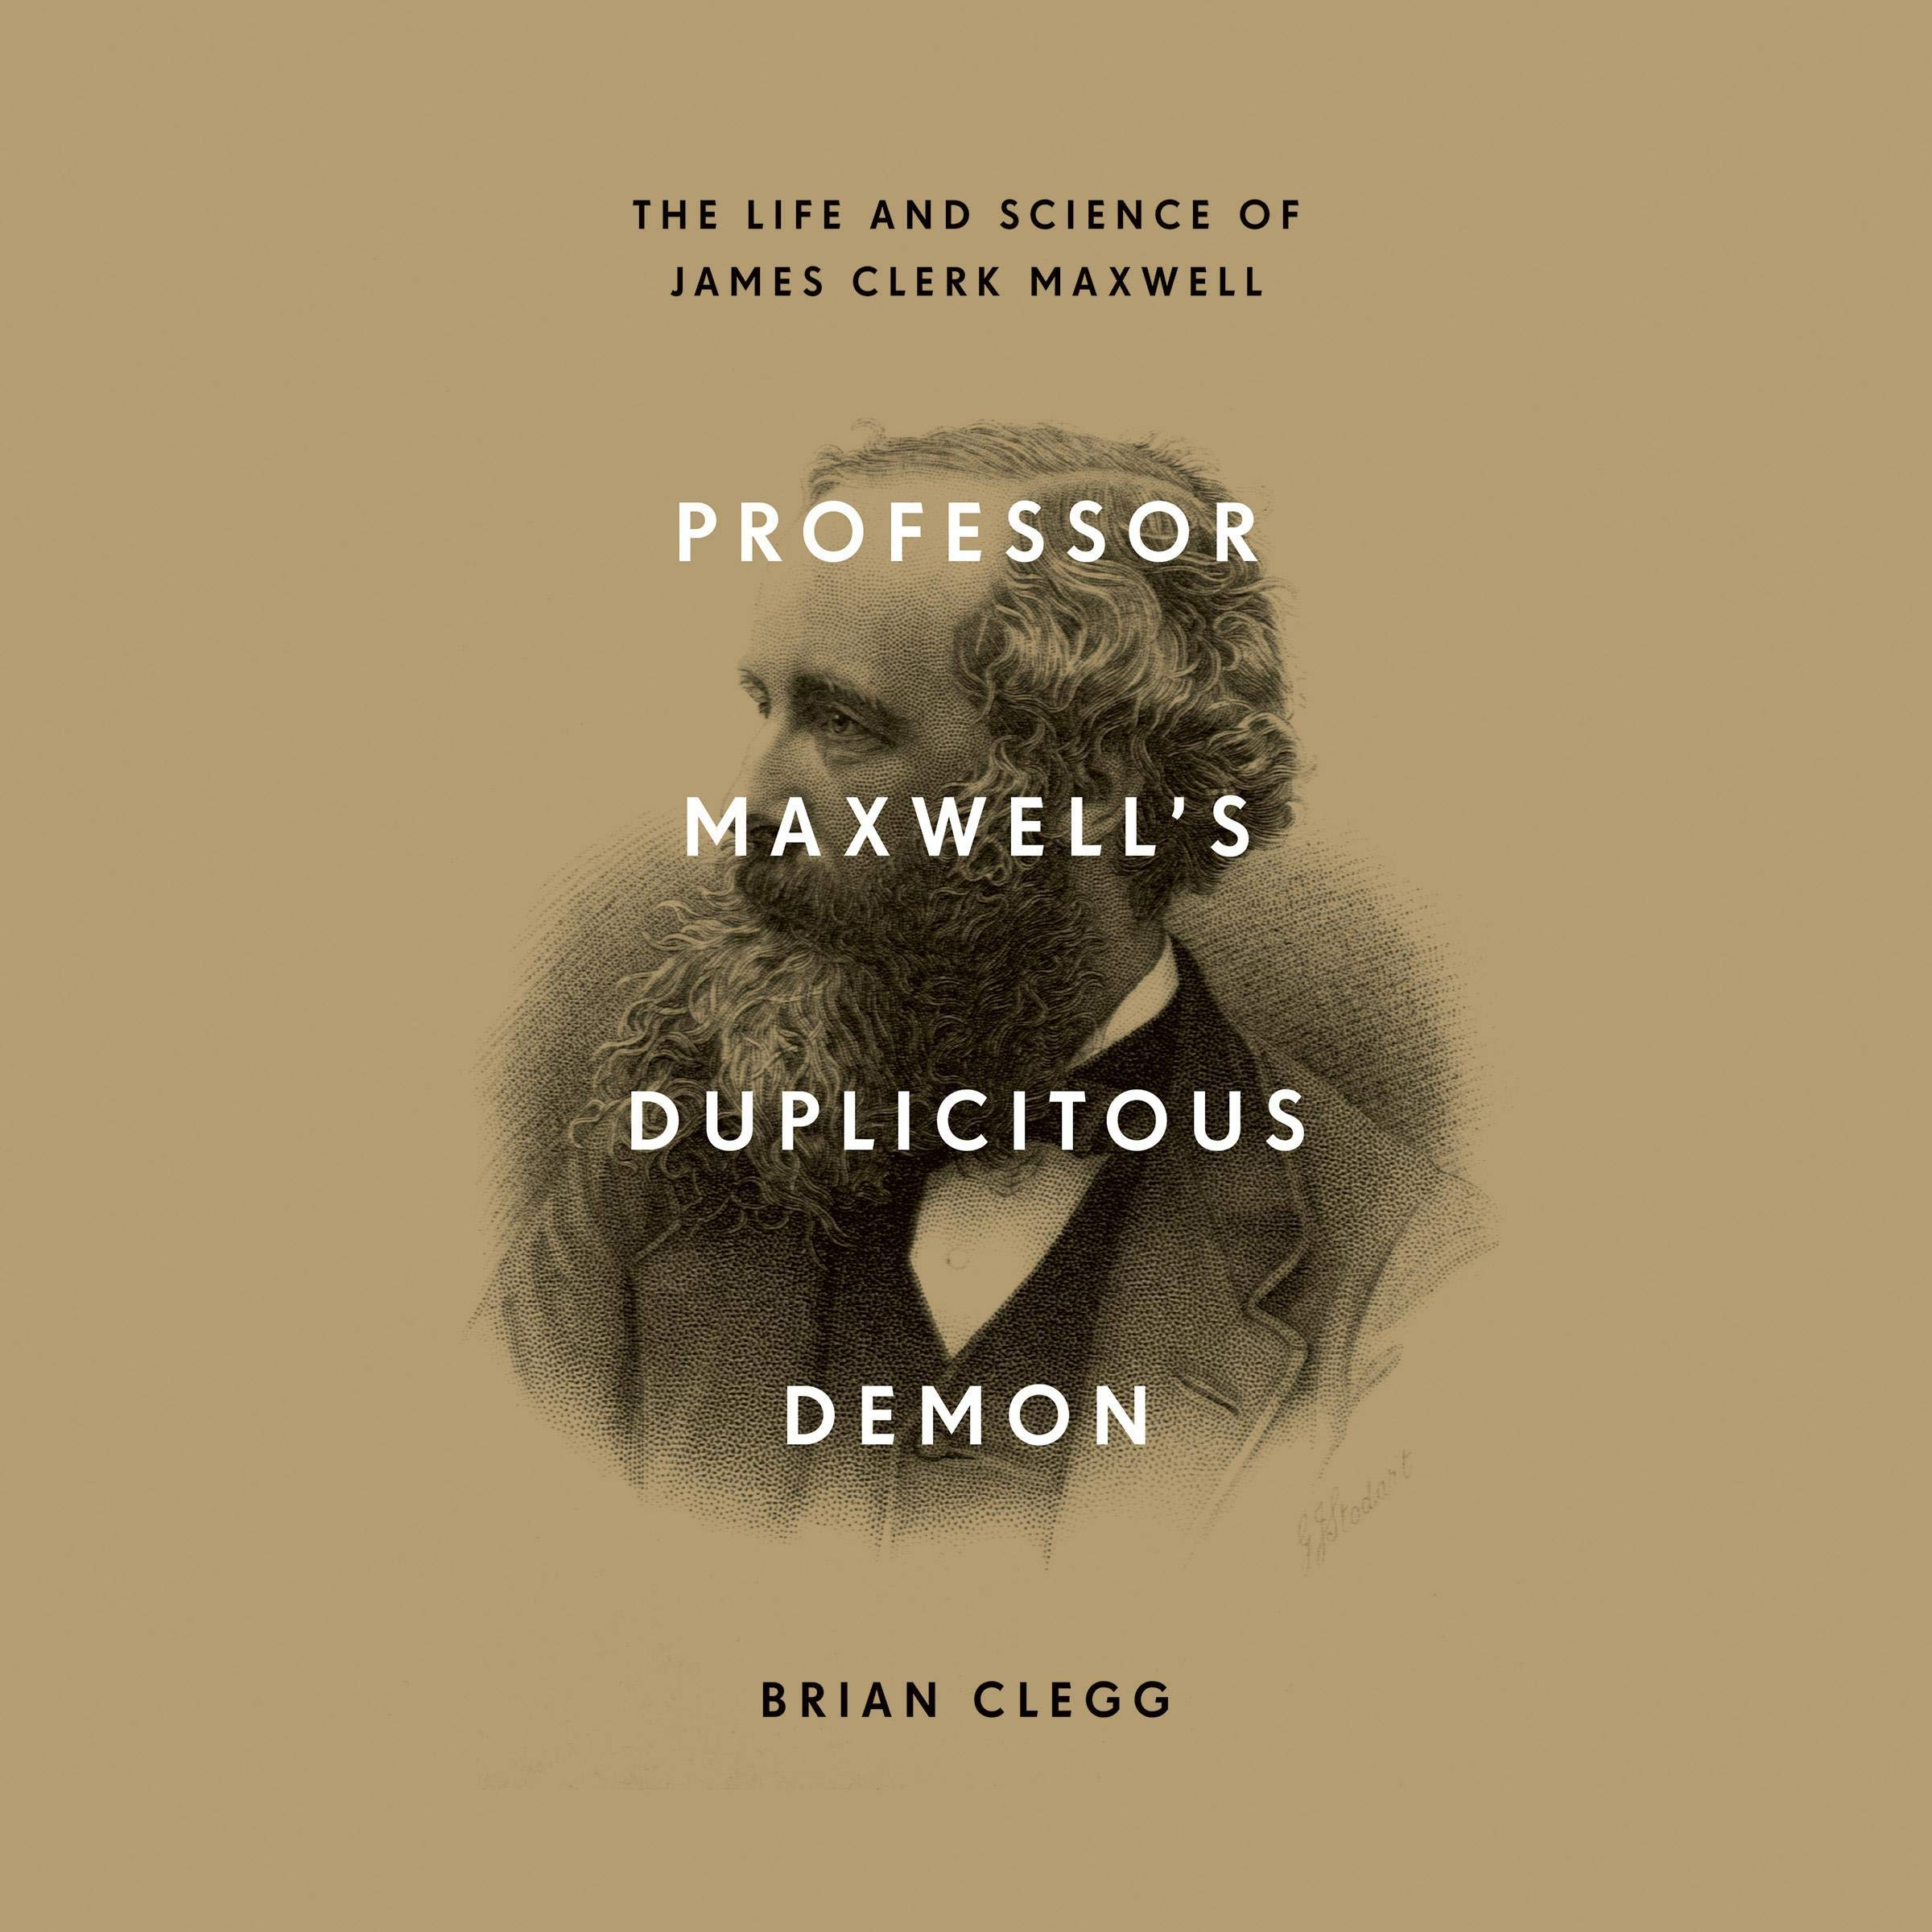 Professor Maxwell's Duplicitous Demon  The Life And Science Of James Clerk Maxwell